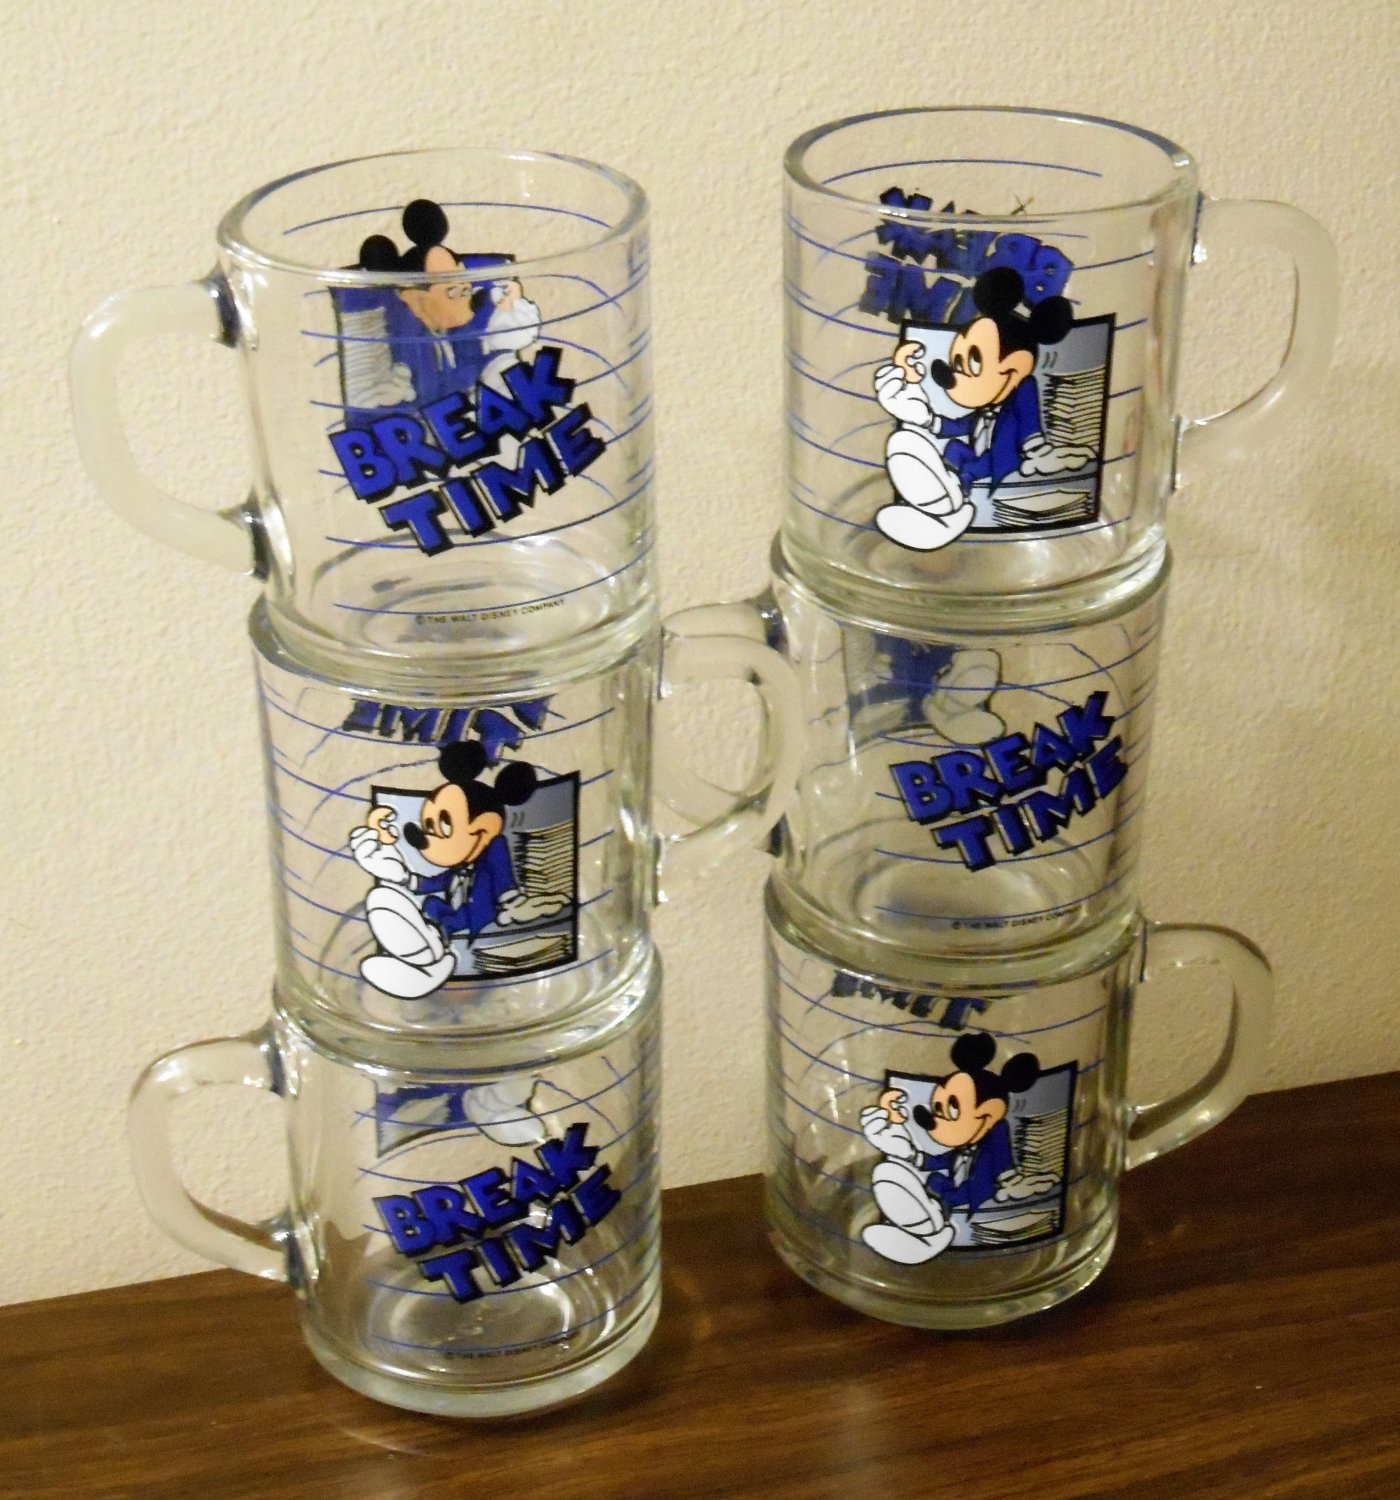 Mickey Mouse Anchor Hocking Coffee Mug Lot of 6 Break Time 3½ Inch Clear Glass Handled Walt Disney